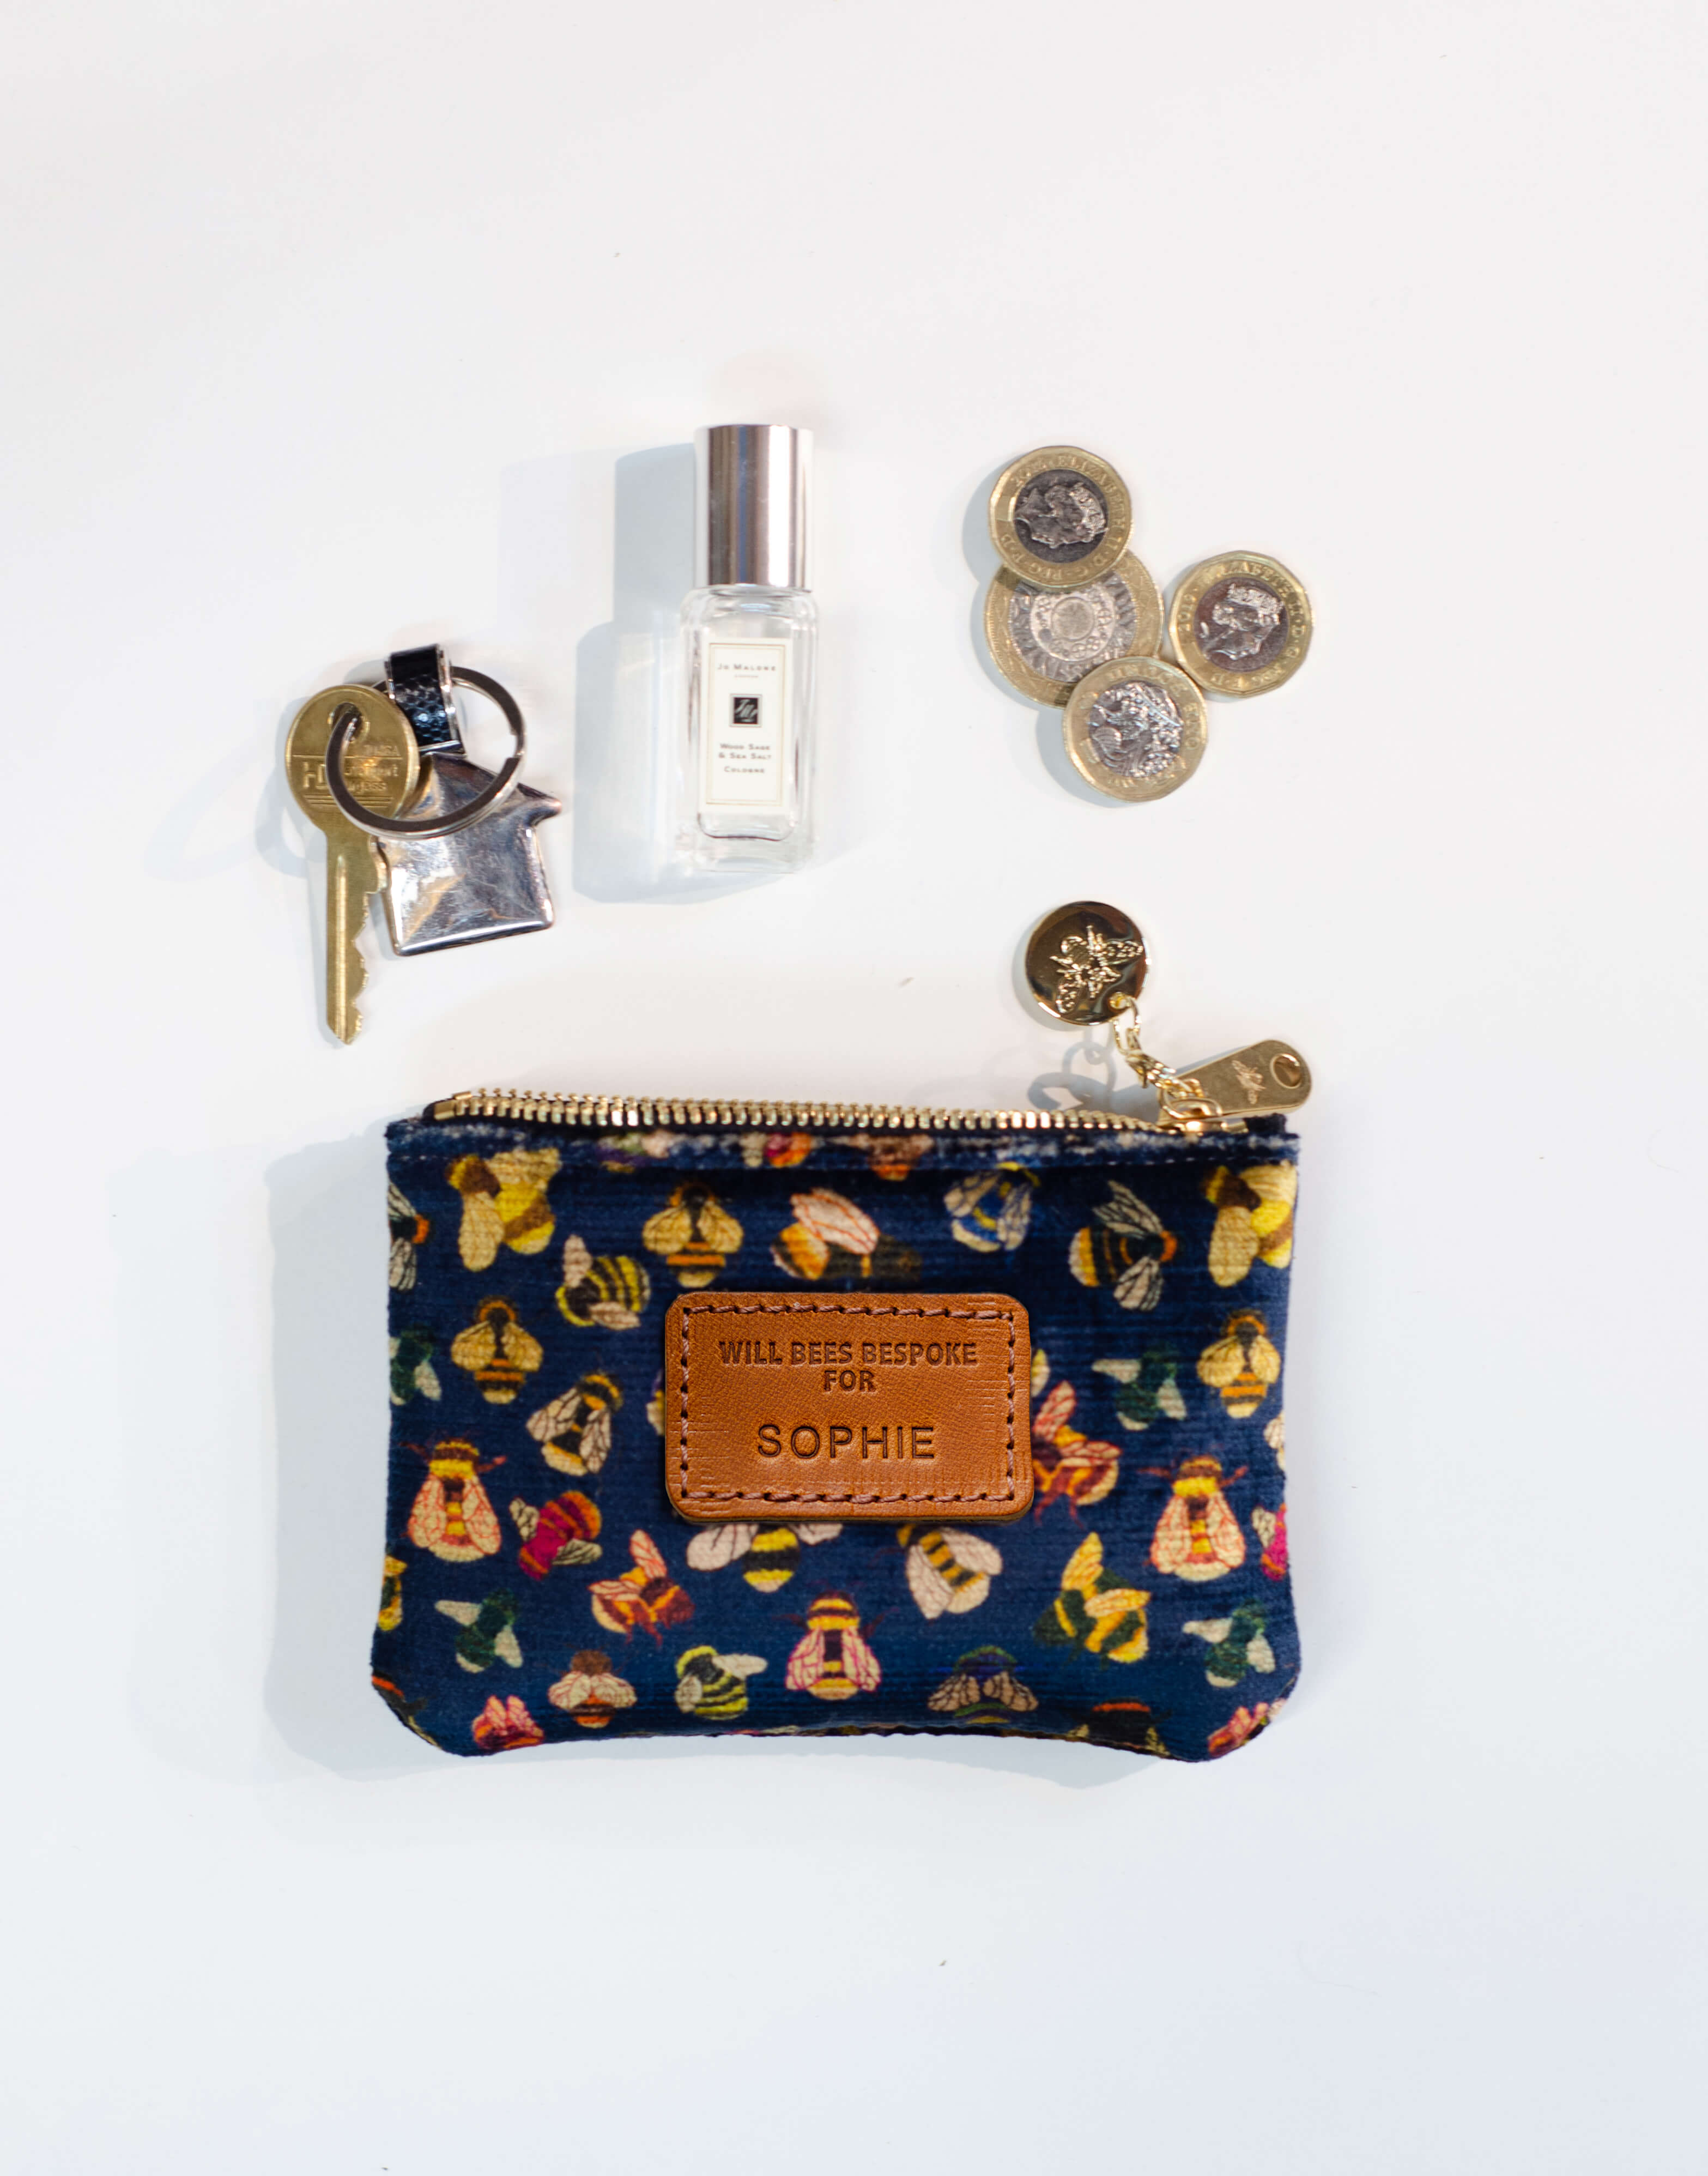 Jane Coin Purse - Bee party in Midnight sky - Will Bees Bespoke